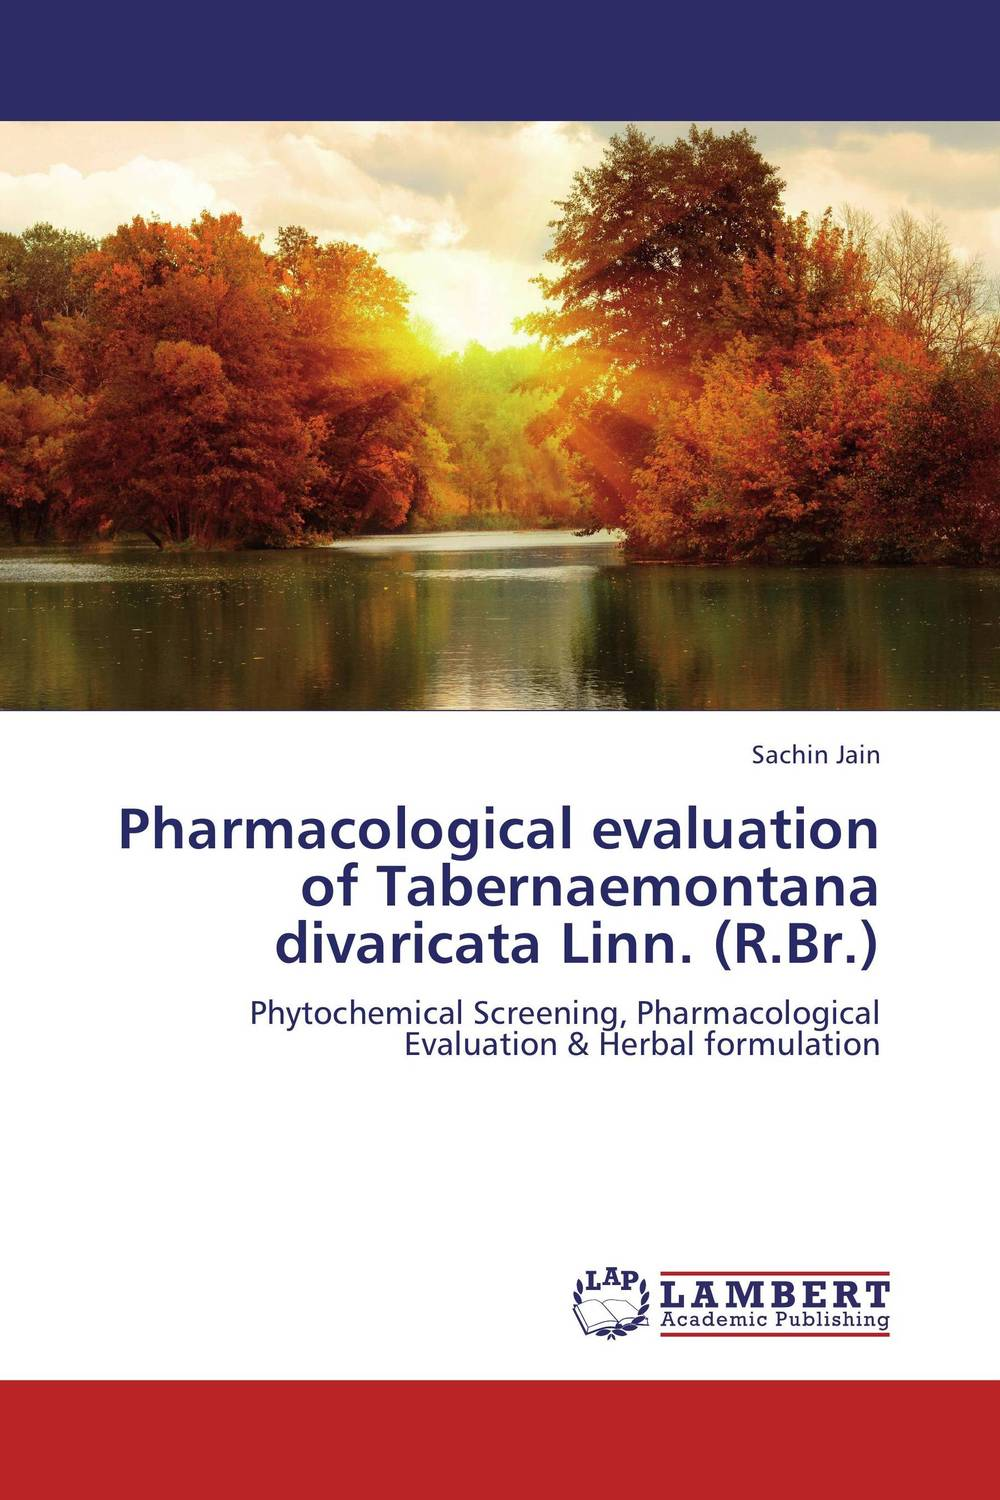 Pharmacological evaluation of Tabernaemontana divaricata Linn. (R.Br.) evaluation of the internal control practices